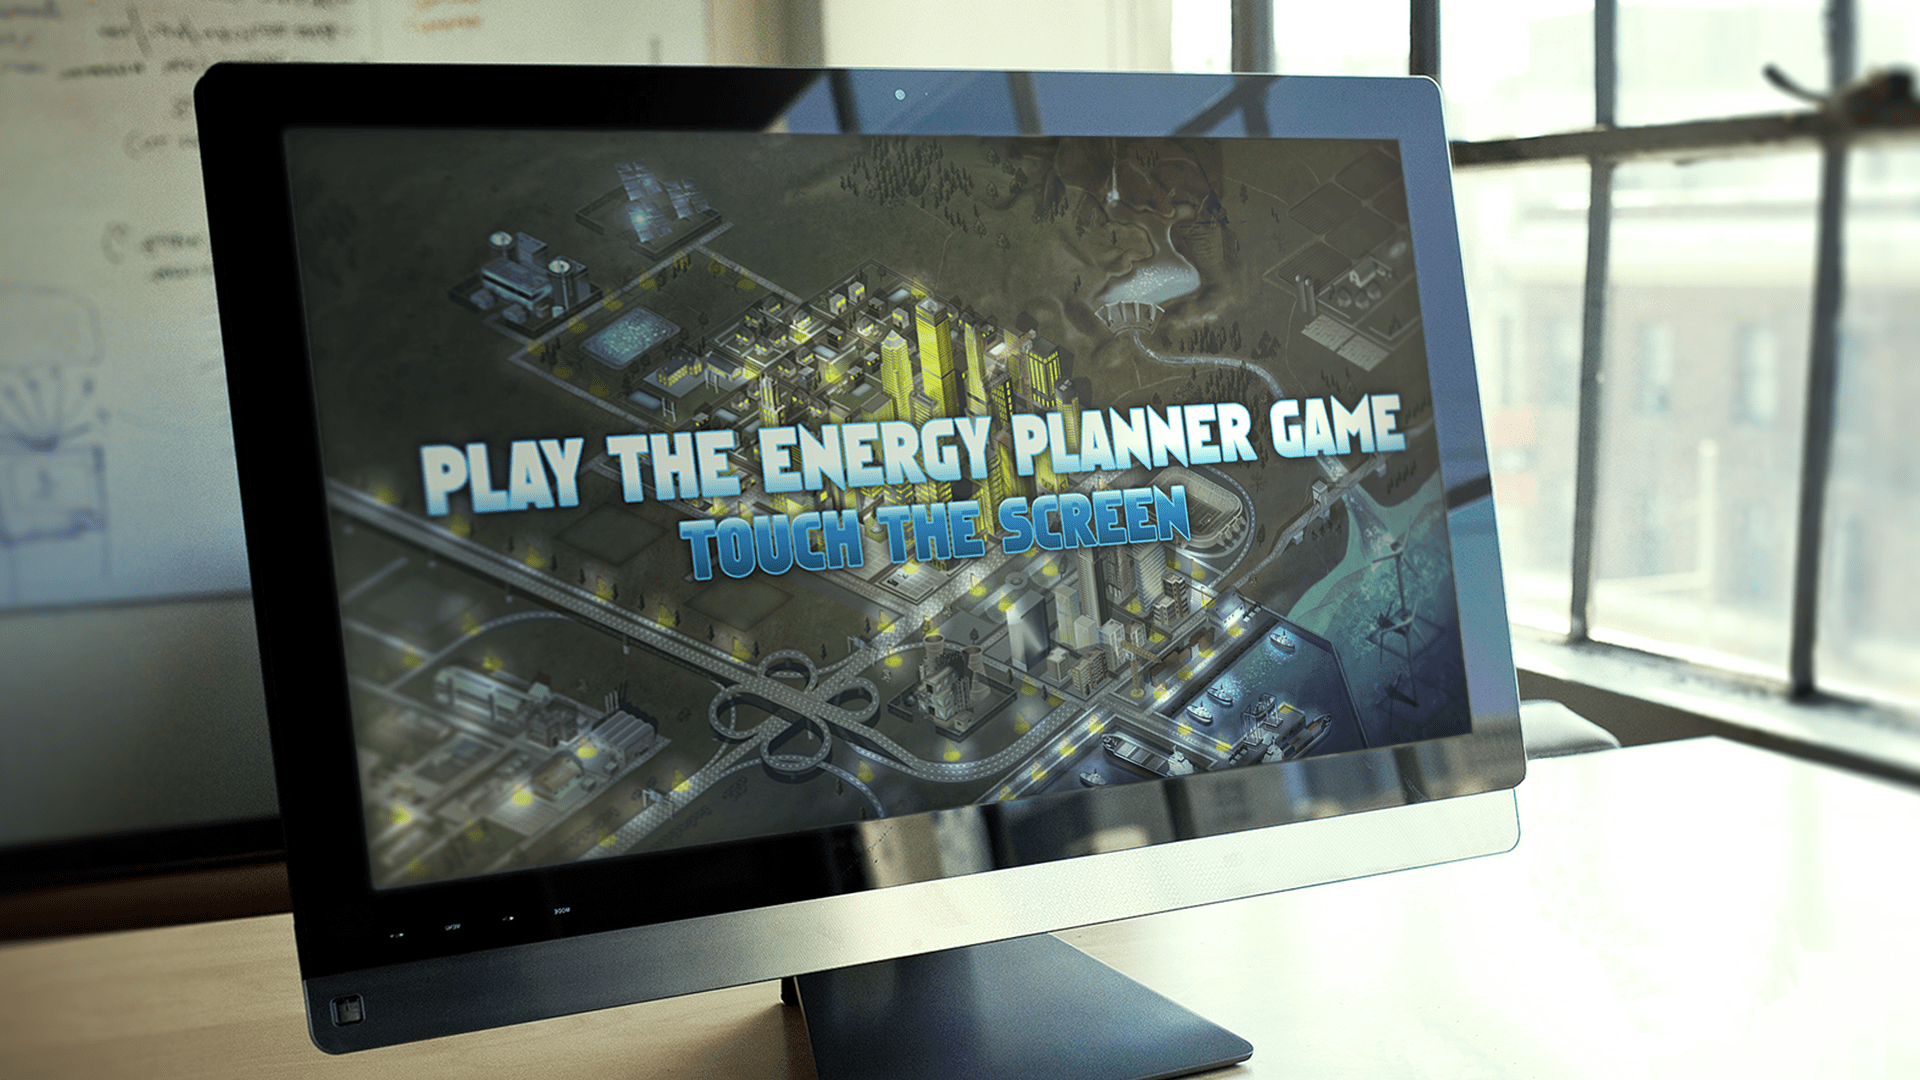 The Energy Planner serious game was created by Formula D interactive